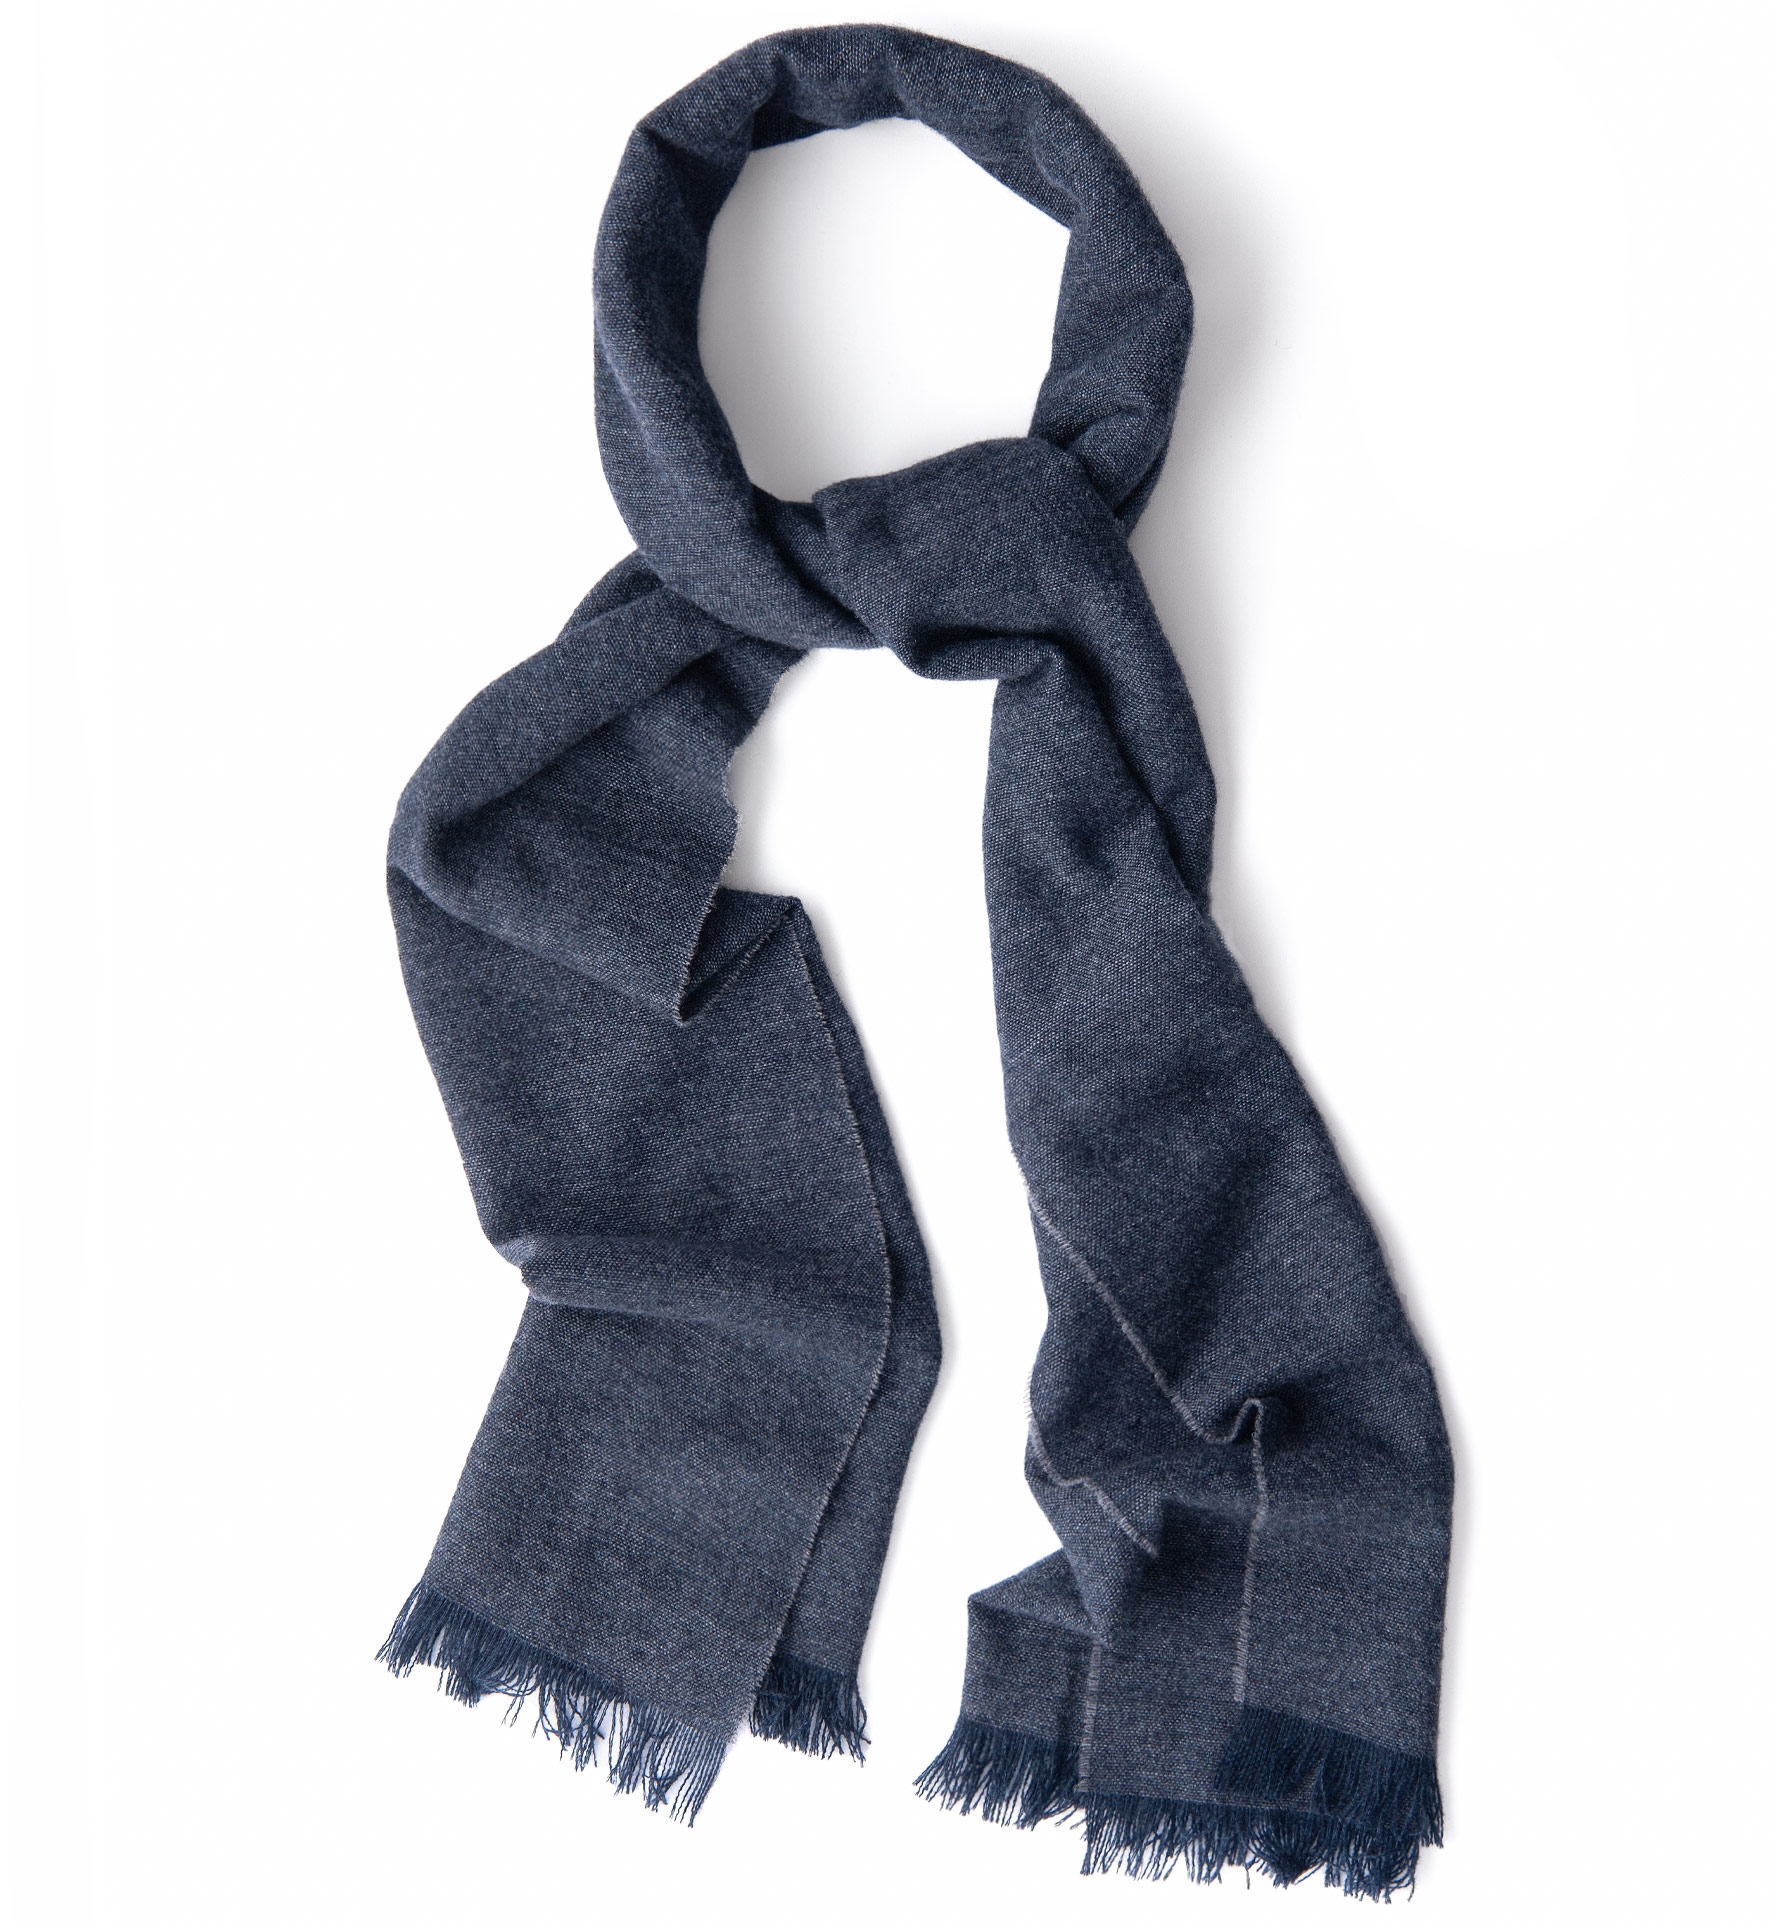 Zoom Image of Dark Grey and Blue Cashmere Scarf